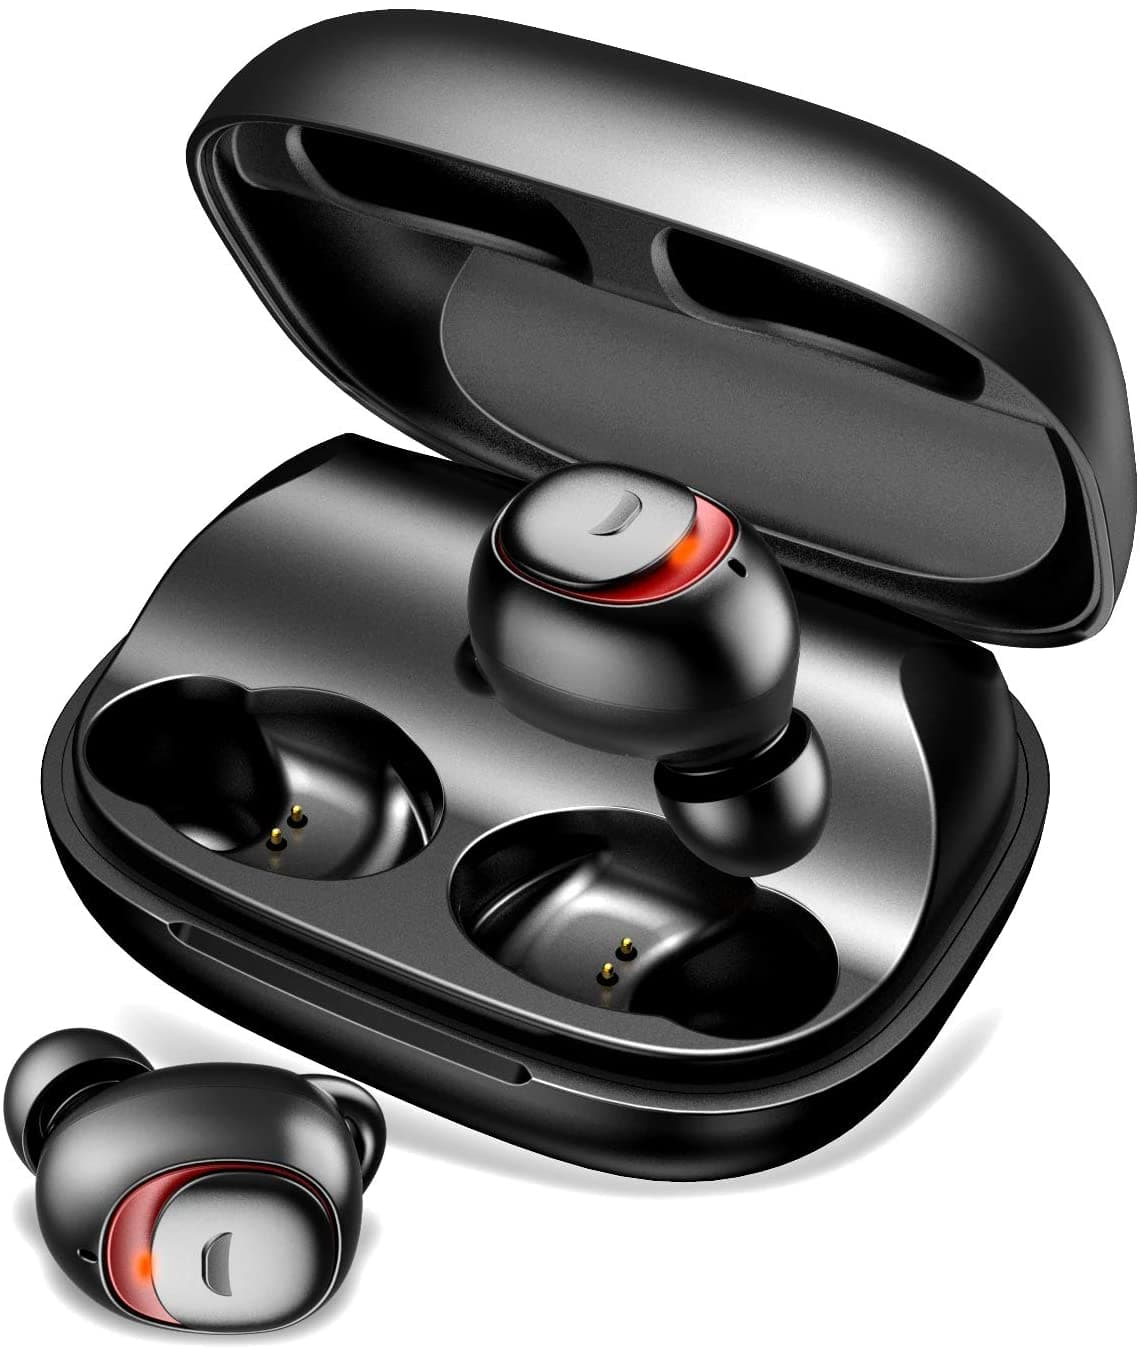 TECKEPIC True Wireless Earbuds $19.97 + free shipping